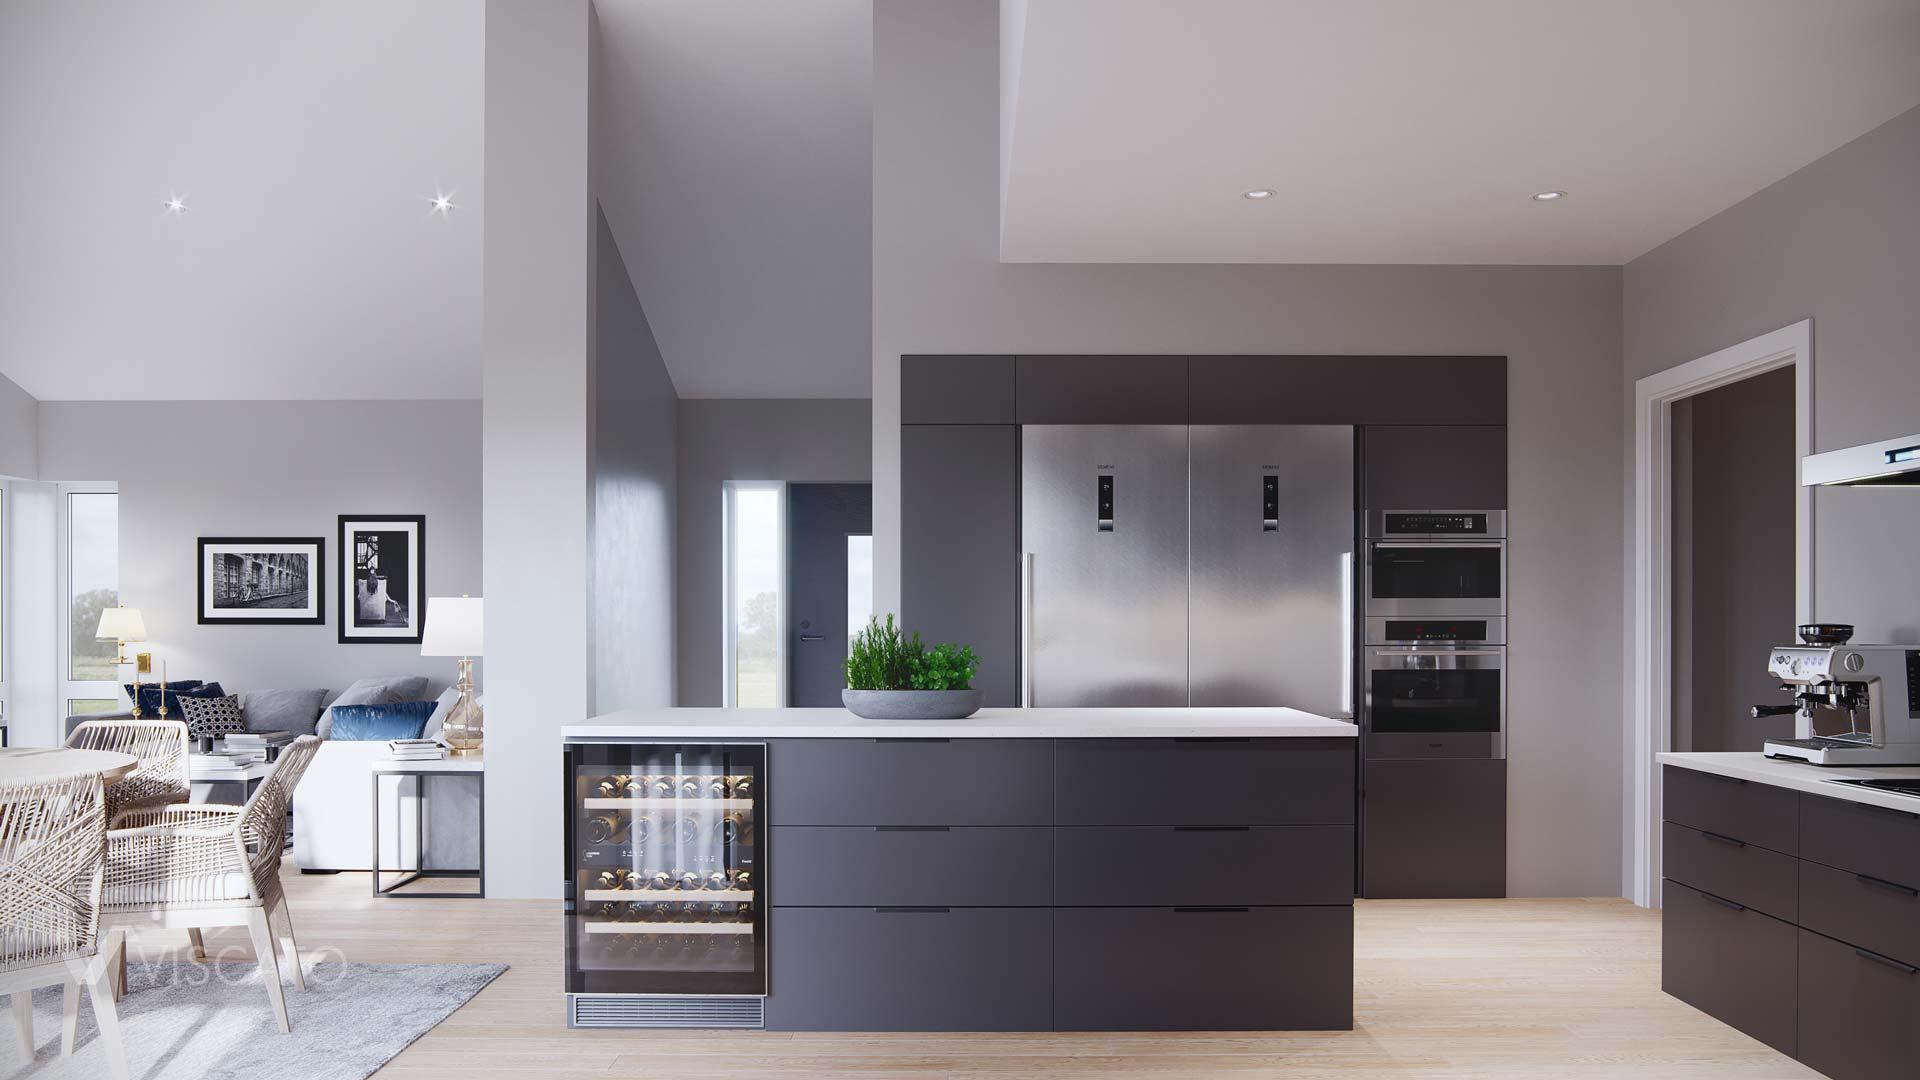 kitchen with two fridges, 3d visualizations